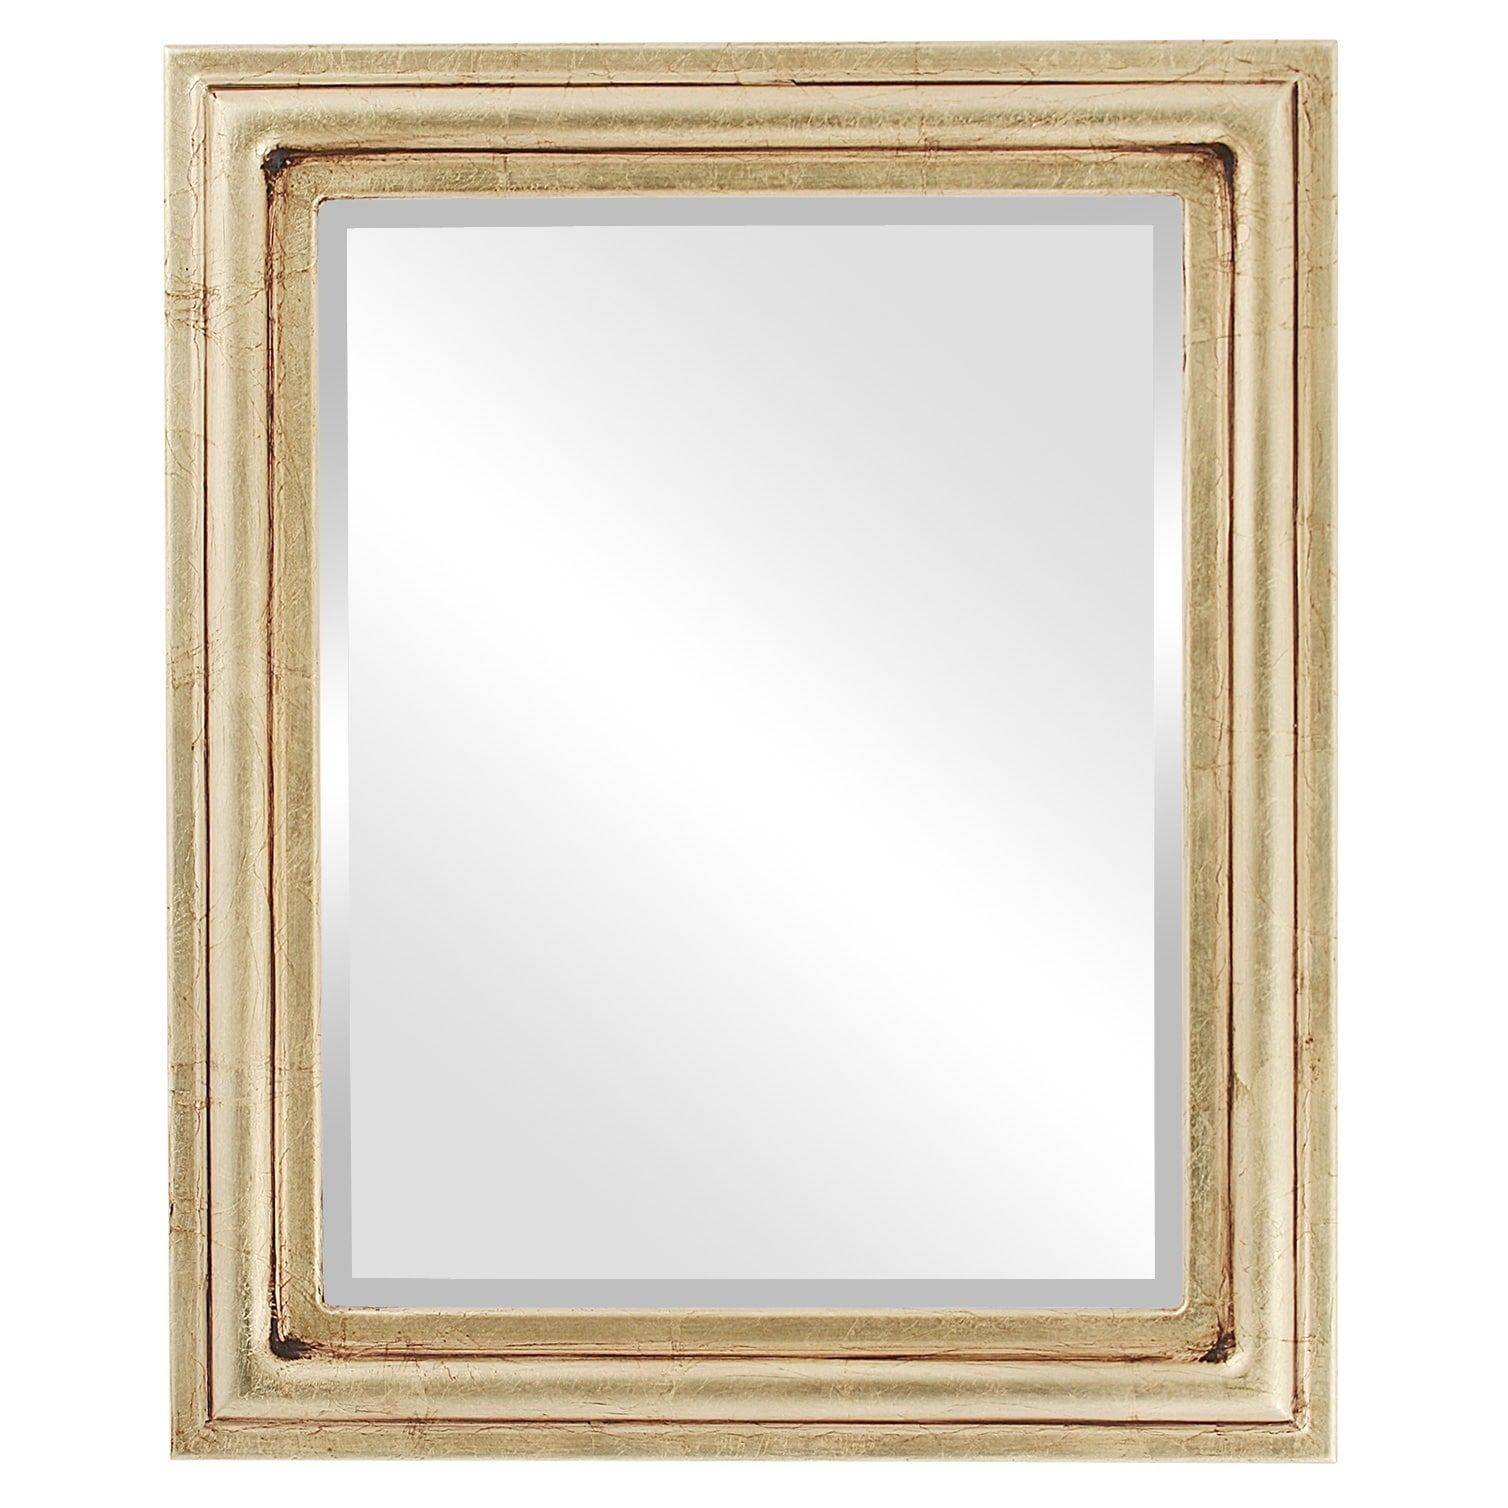 Philadelphia Framed Rectangle Mirror in Gold Leaf (15x19) | Products ...